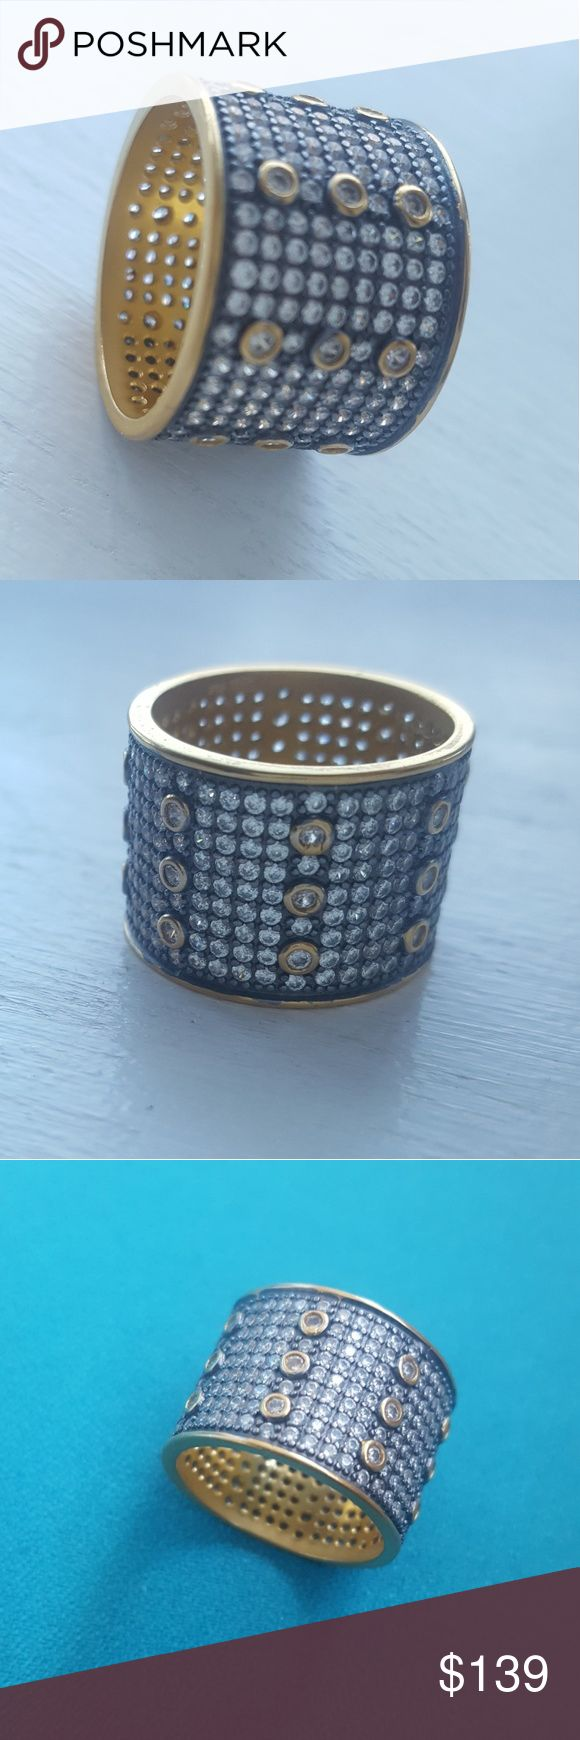 "Freida Rothman Designer 925'GP with CZ !💖 Its hand-dipped in 14k matte gold and black rhodium plated sterling silver and its hand-set with cubic zirconia stones!!!💖💖💖💖  DIMENSIONS Contemporary Deco Pave Cigar Band  RingSize 7 14KT Gold and Black Rhodium Plated Sterling Silver Band Measures: .5"" Wide Comes with its Designer Pouch:) Freida Rothman Jewelry Rings"